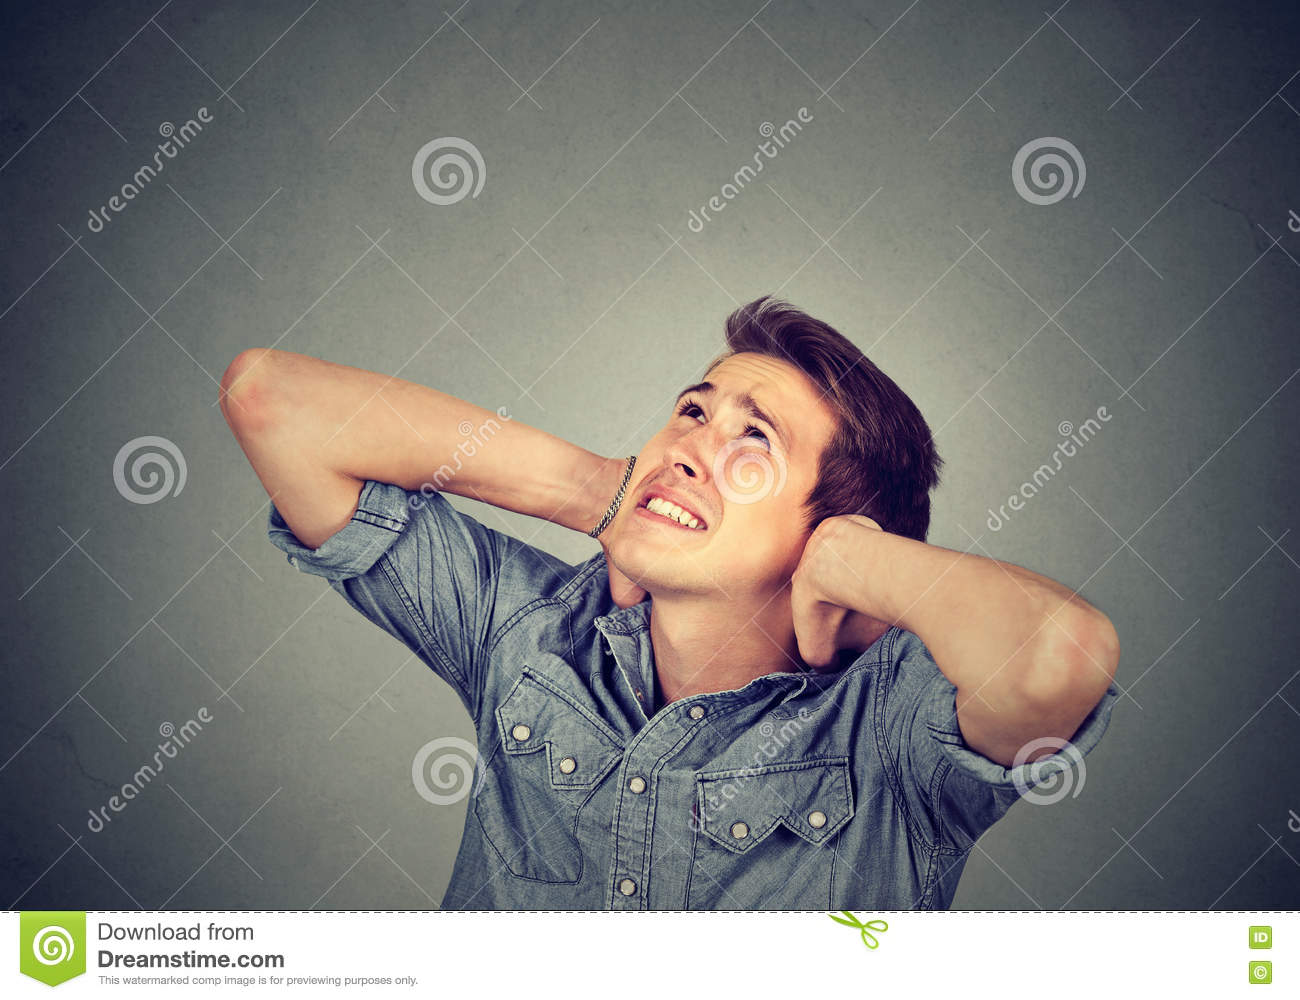 Download Annoyed Stressed Man Covering His Ears Looking Up Stock Image - Image of night, music: 80364501